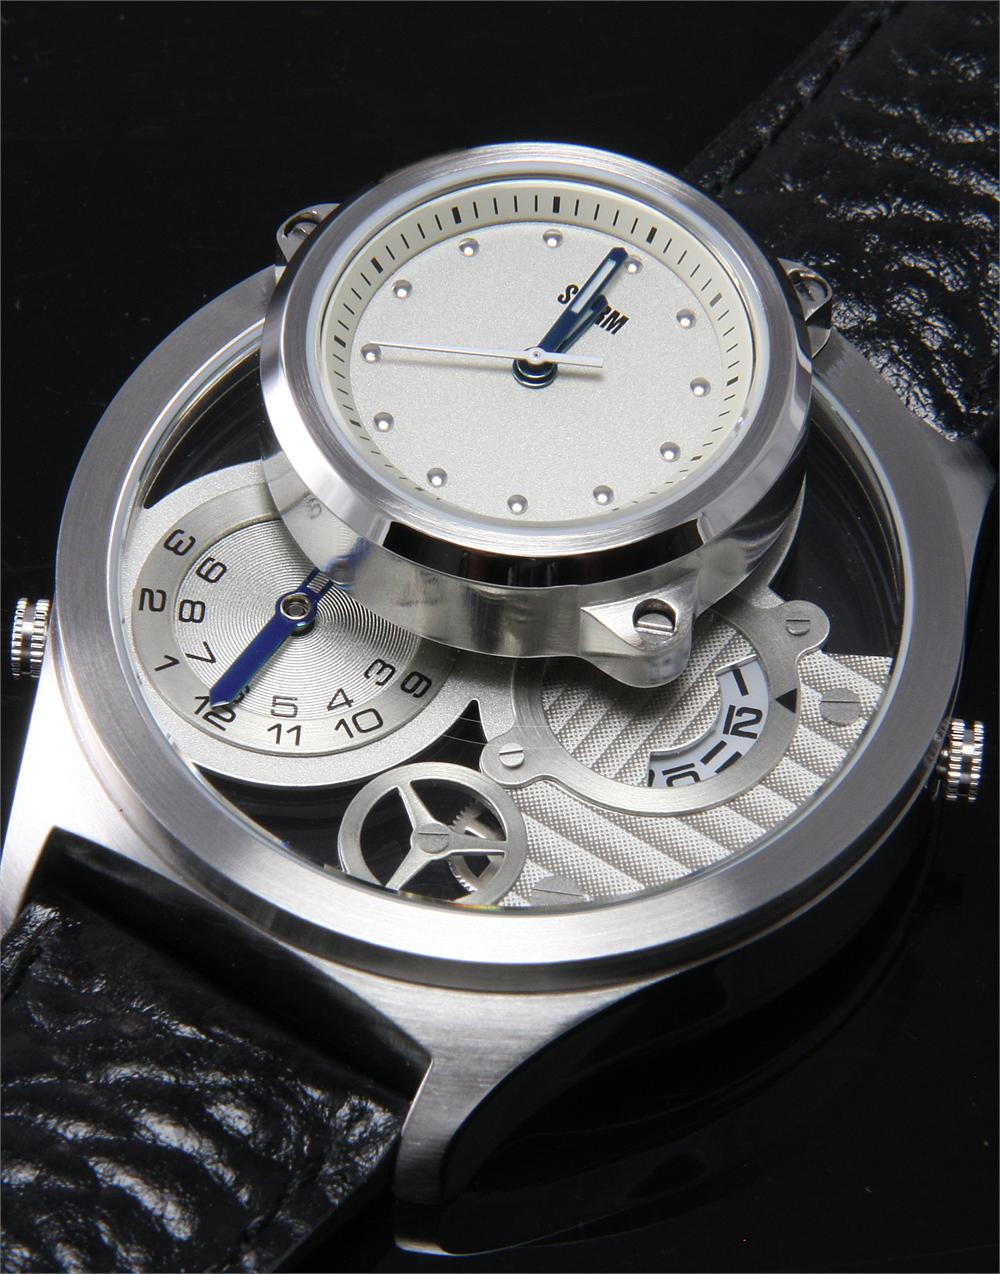 Watchismo times storm trilogy watch double decker for Watchismo